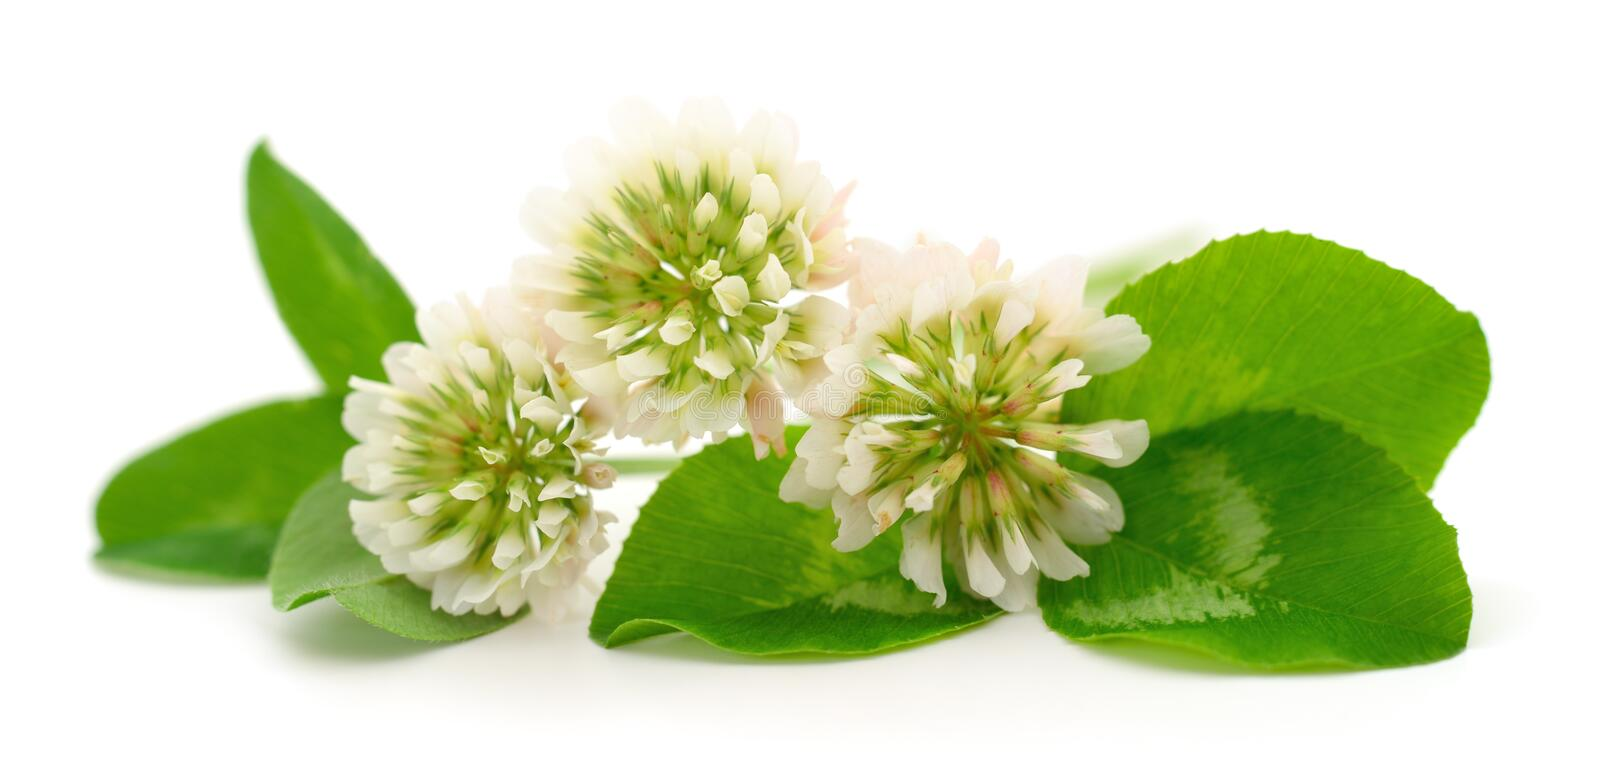 White clover flowers. On a white background stock photos